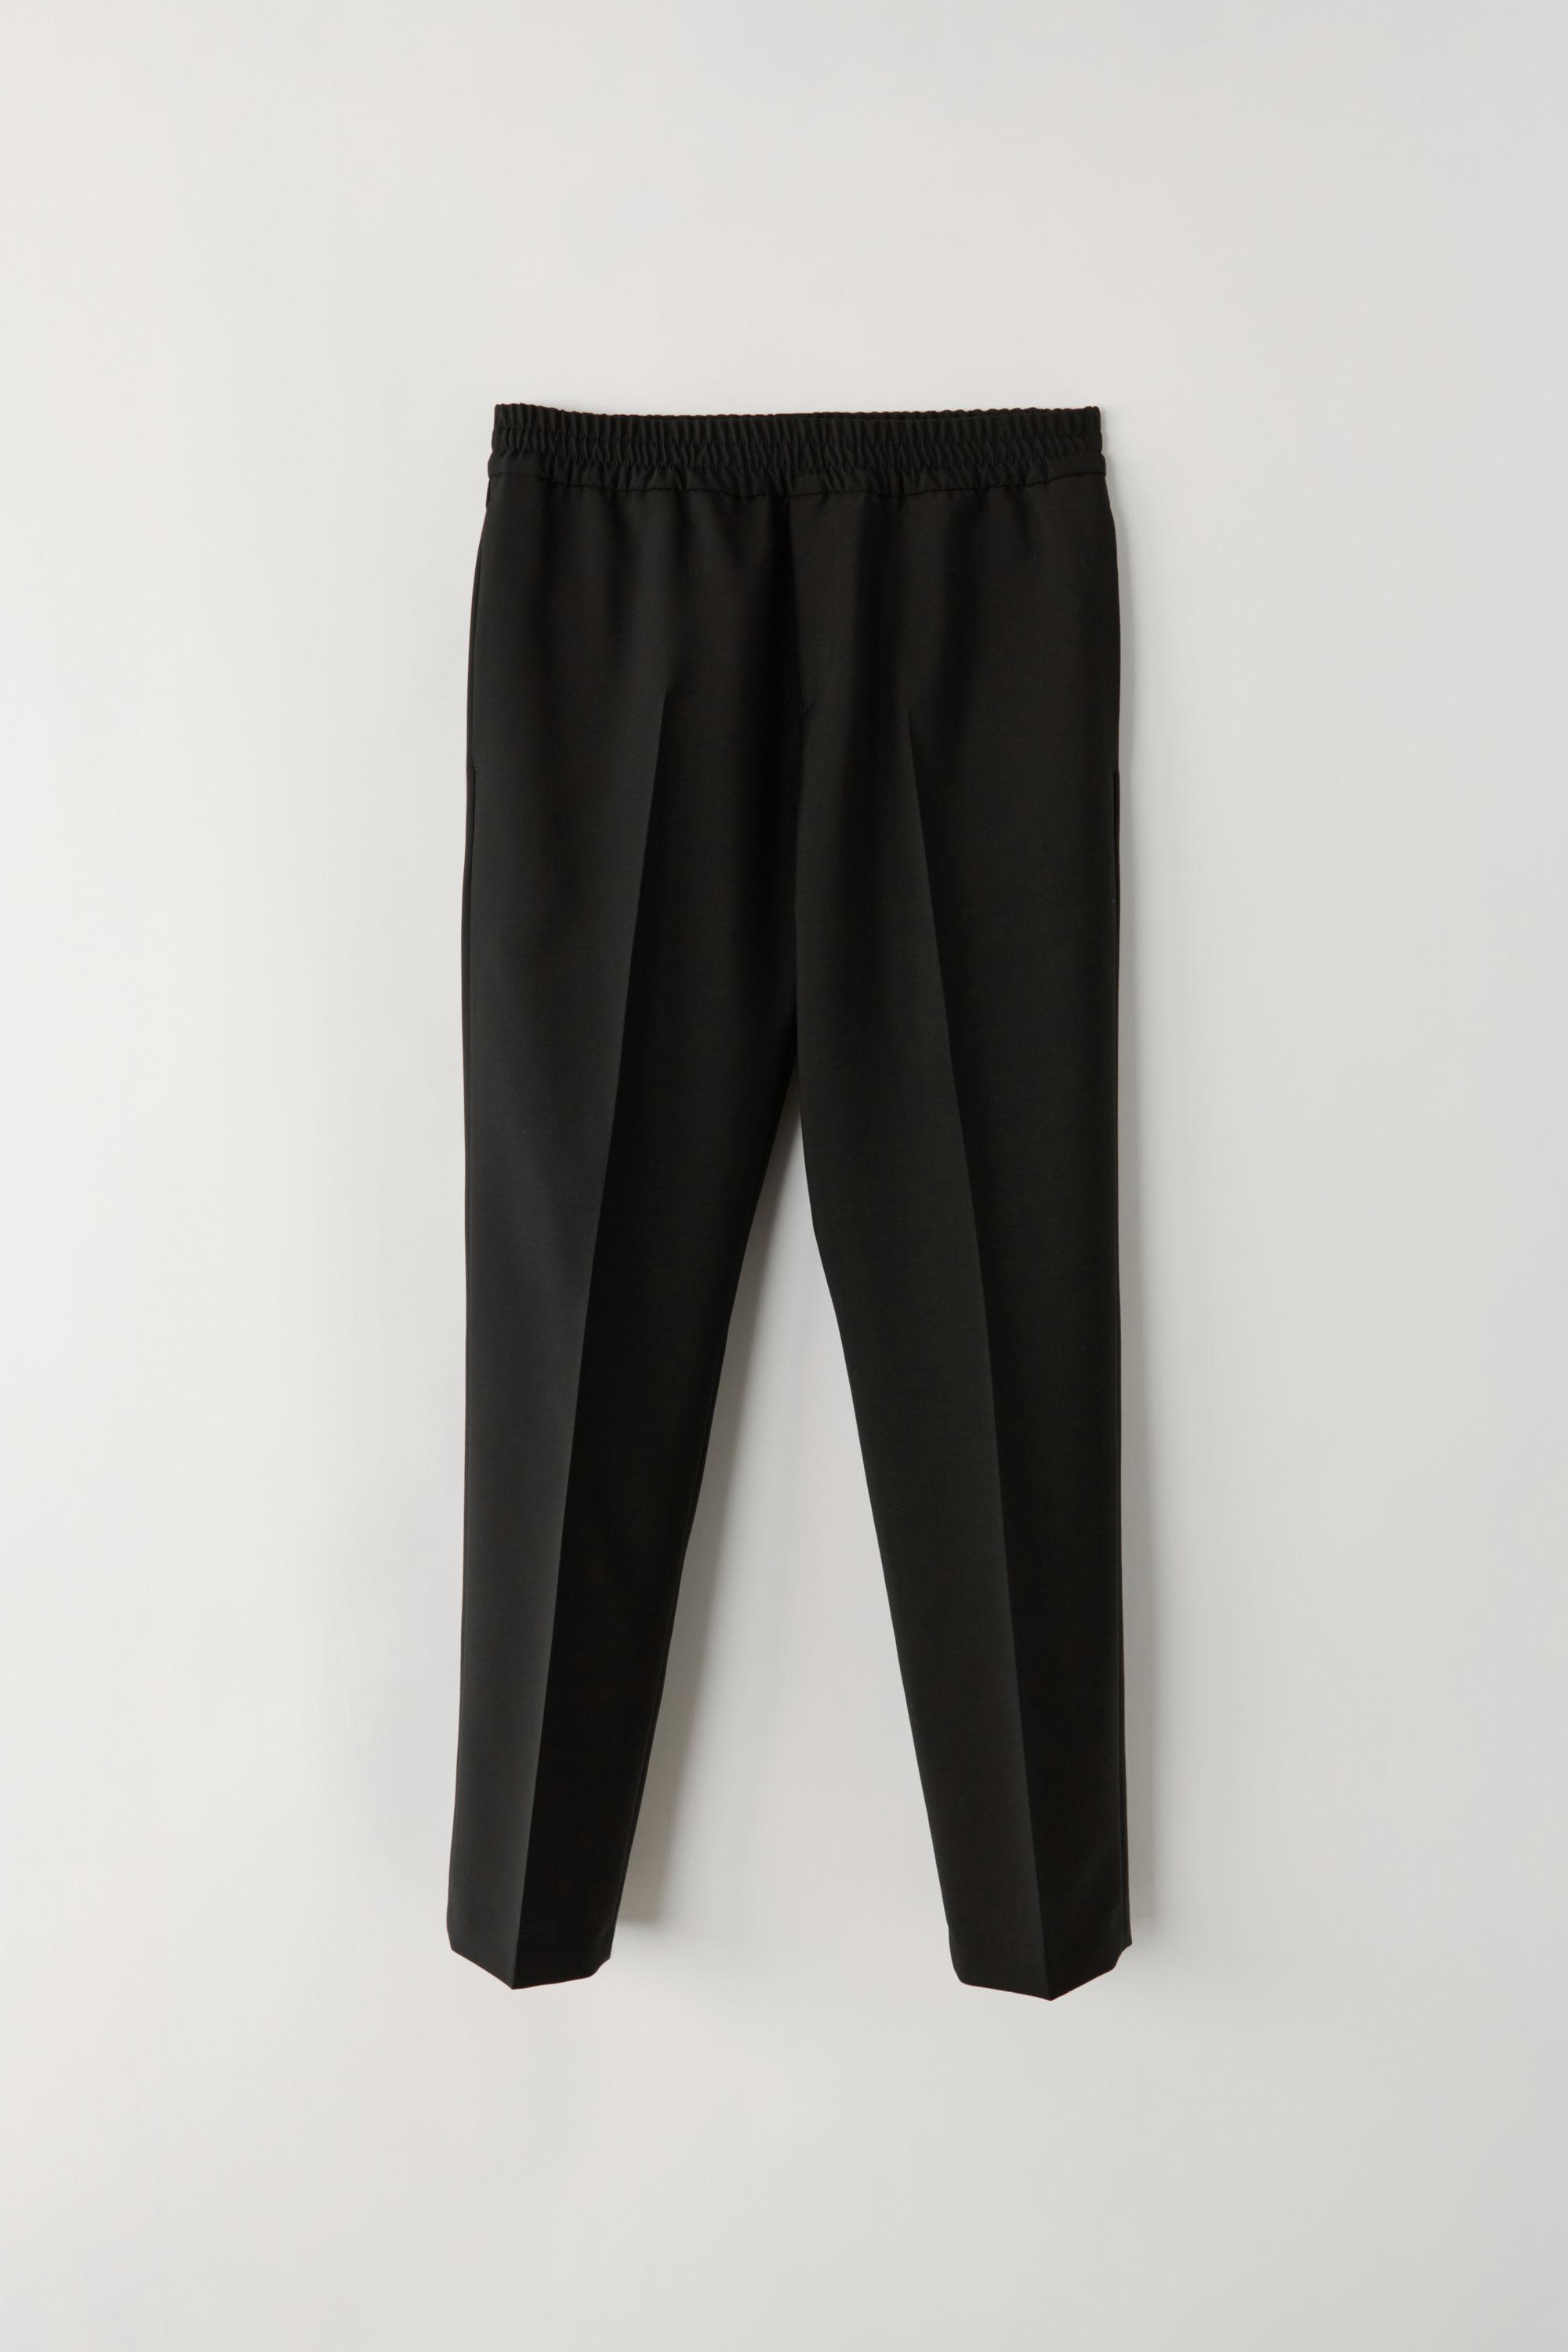 619734c4cd25 Acne Studios Ryder L Wo Mh Black Elastic Waist Trousers in Black for ...